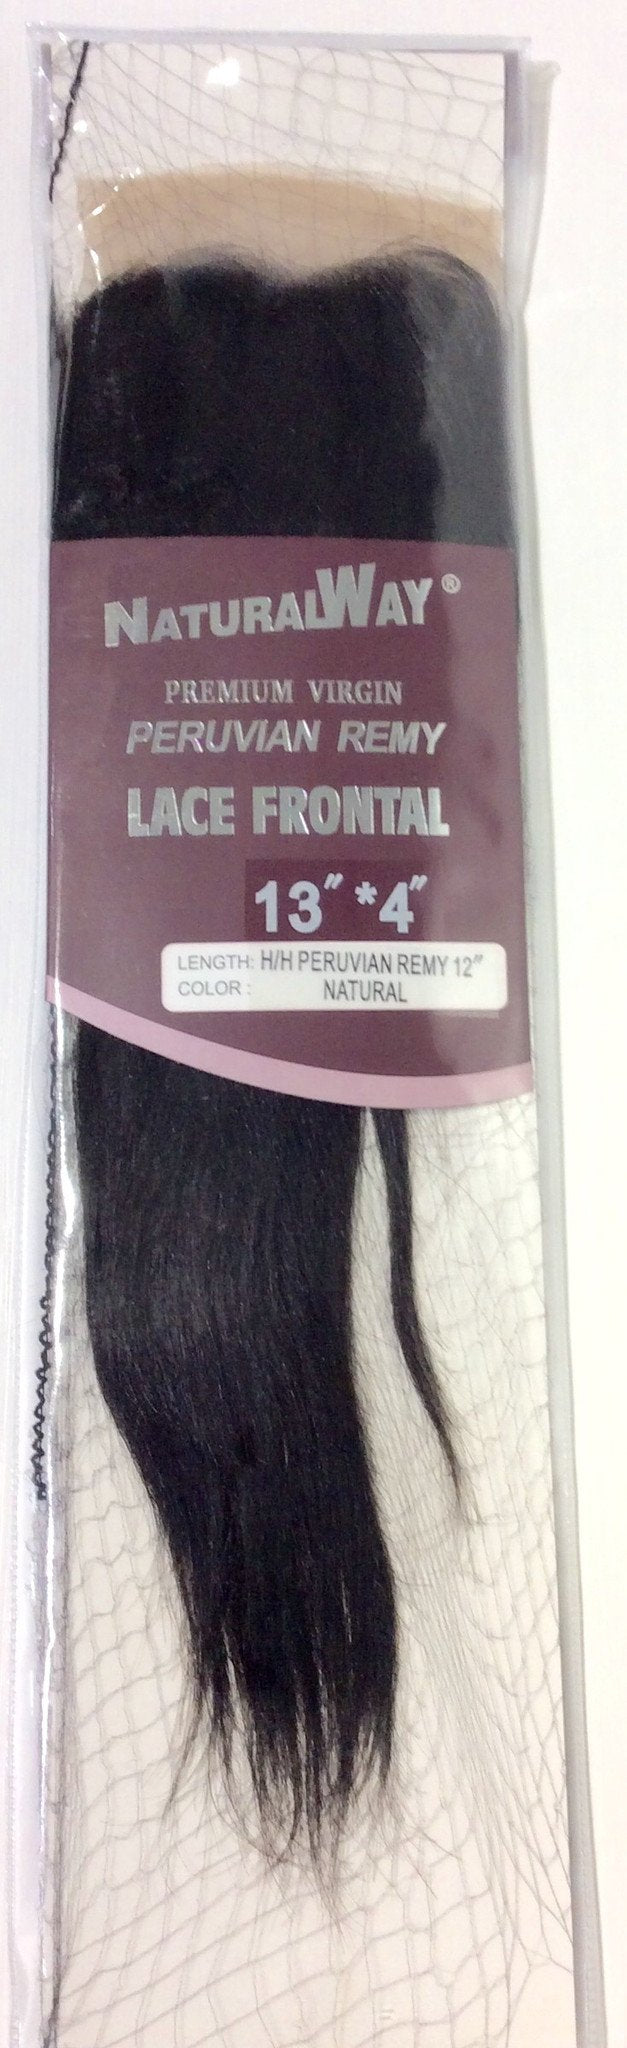 "12"" Premium Virgin Peruvian  Remy Lace Frontal 13""*4"" Natural"